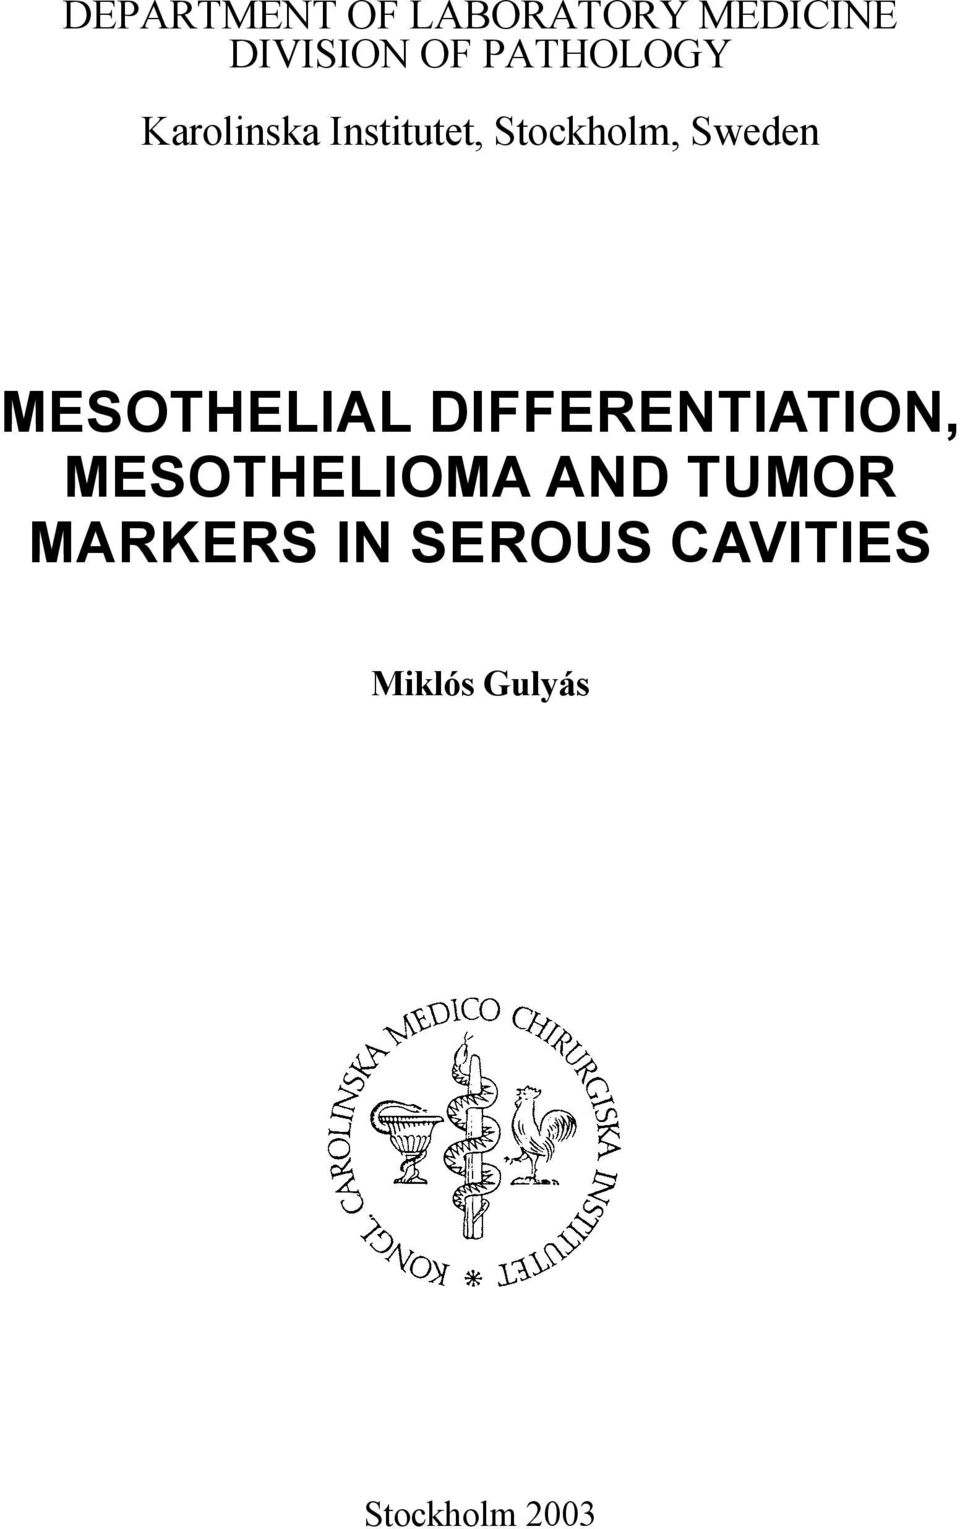 MESOTHELIAL DIFFERENTIATION, MESOTHELIOMA AND